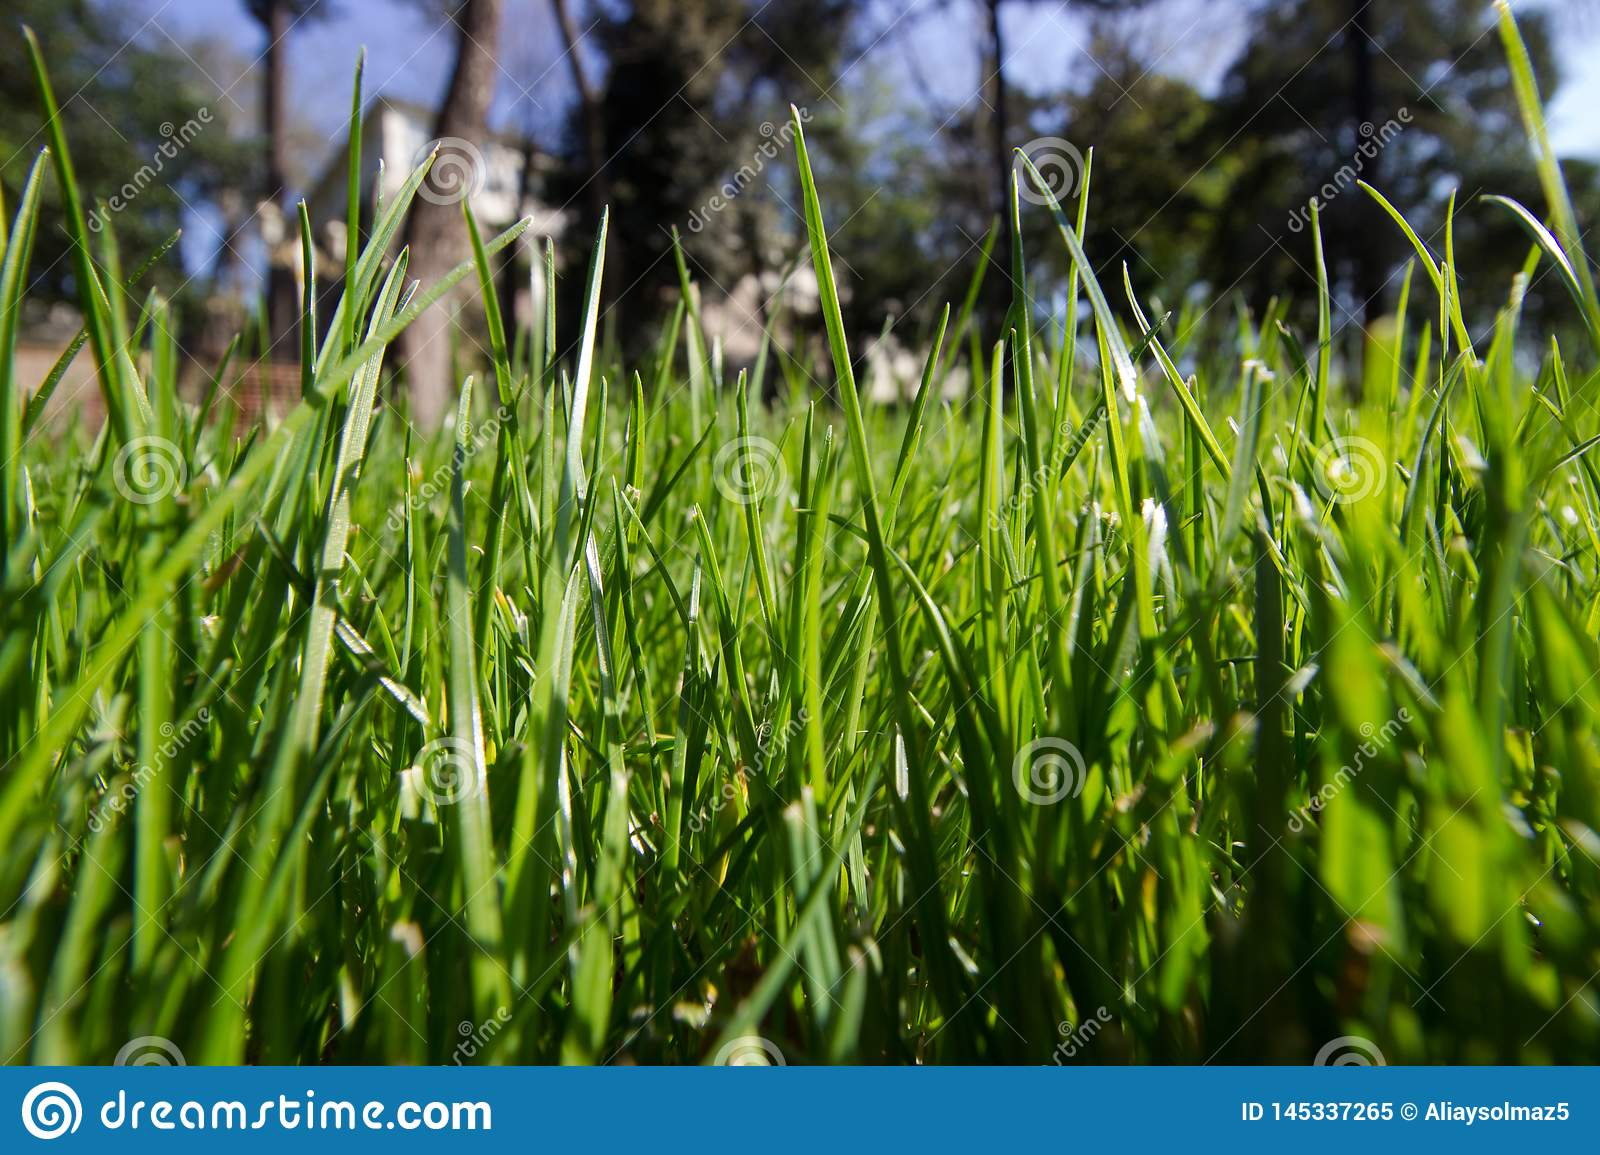 Spring Time for Istanbul April 2019, Grassy Field, Bright and Sunny Day.